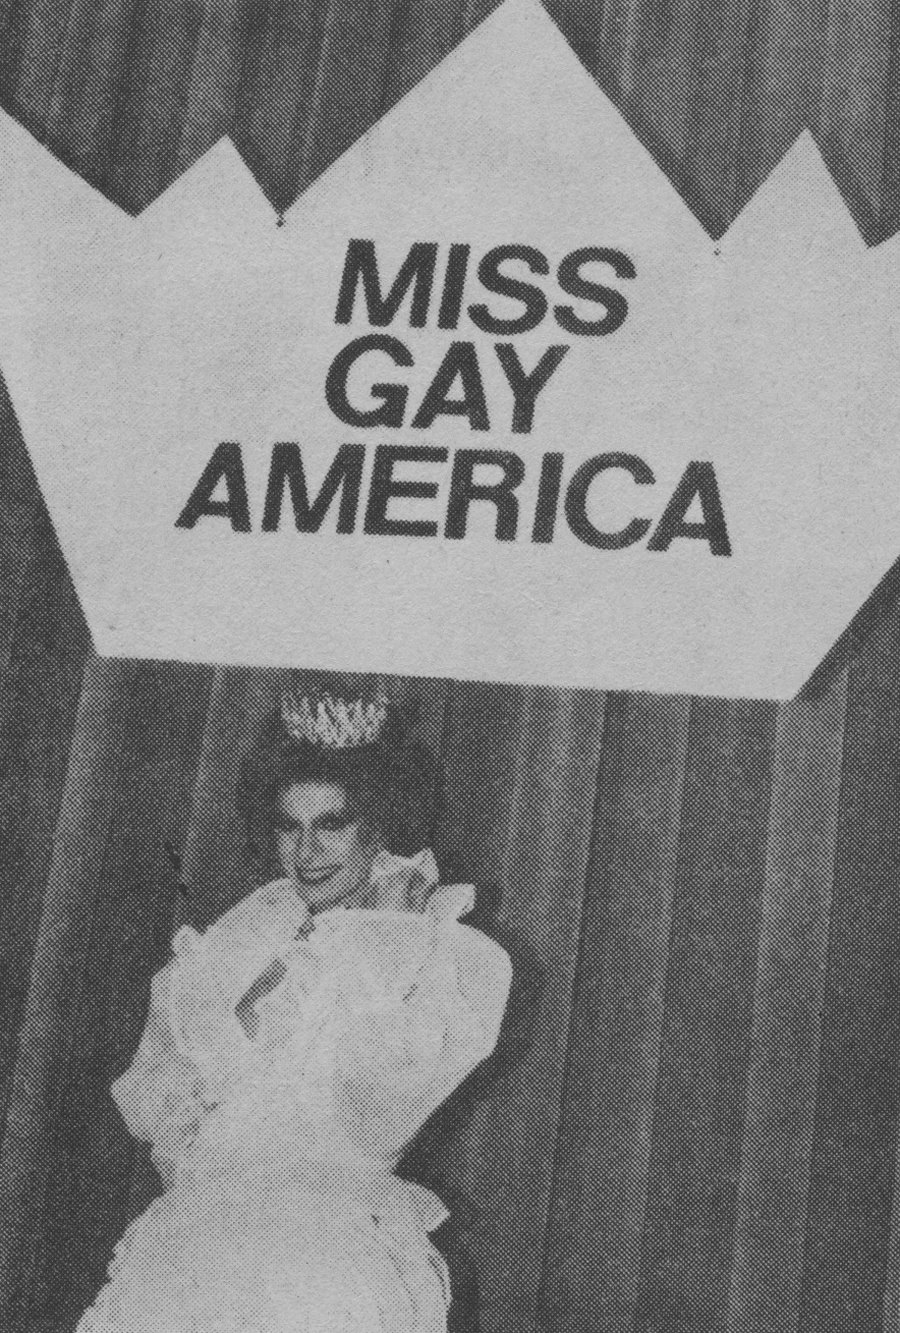 Jennifer Foxx, moments after being crowned as Miss Gay America 1982. (Dallas Convention Center; Dallas, TX; September 1981)